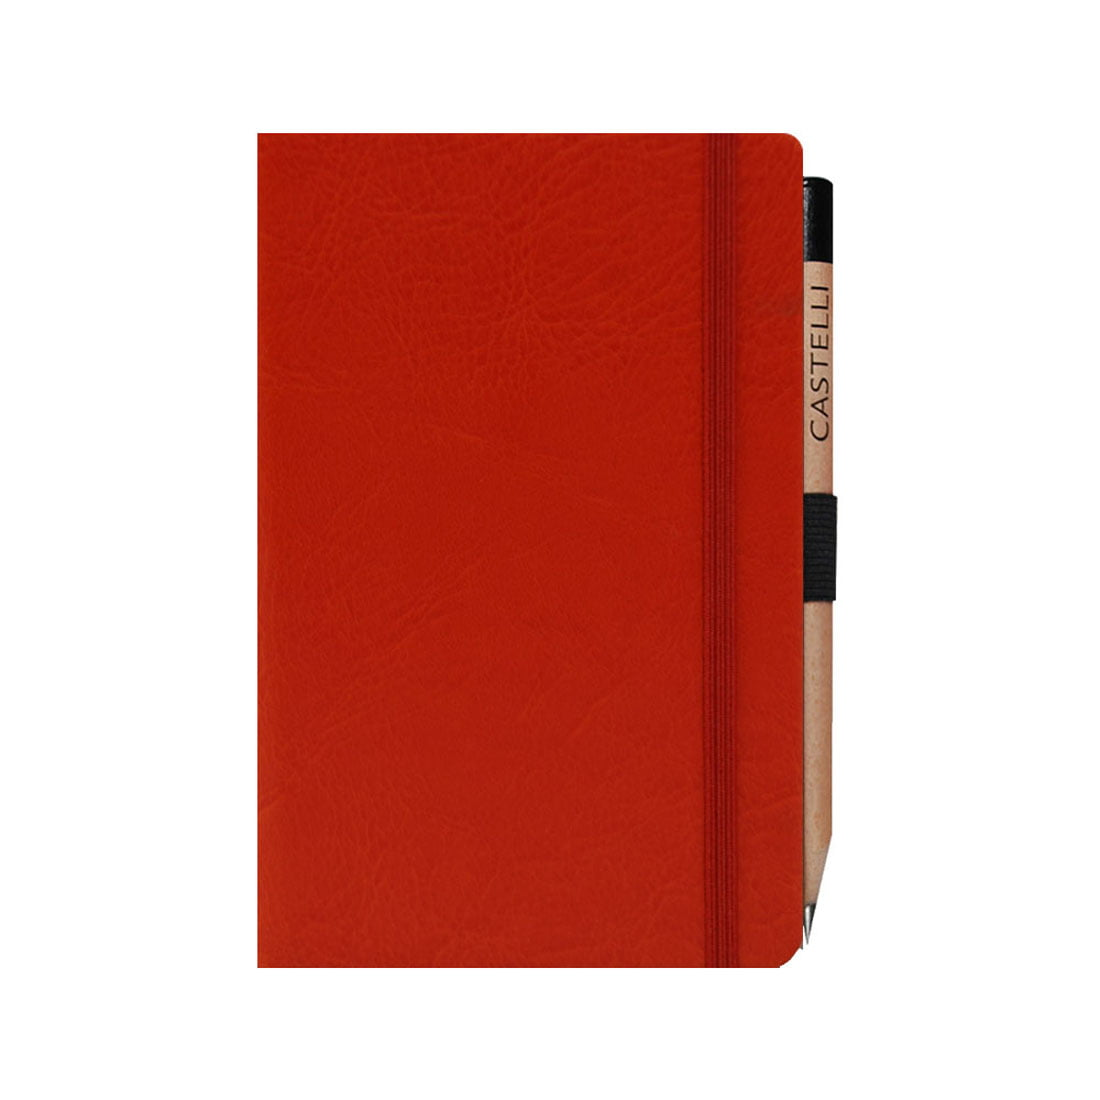 Pocket notebook with elasticated closure band, round corners and lined pages